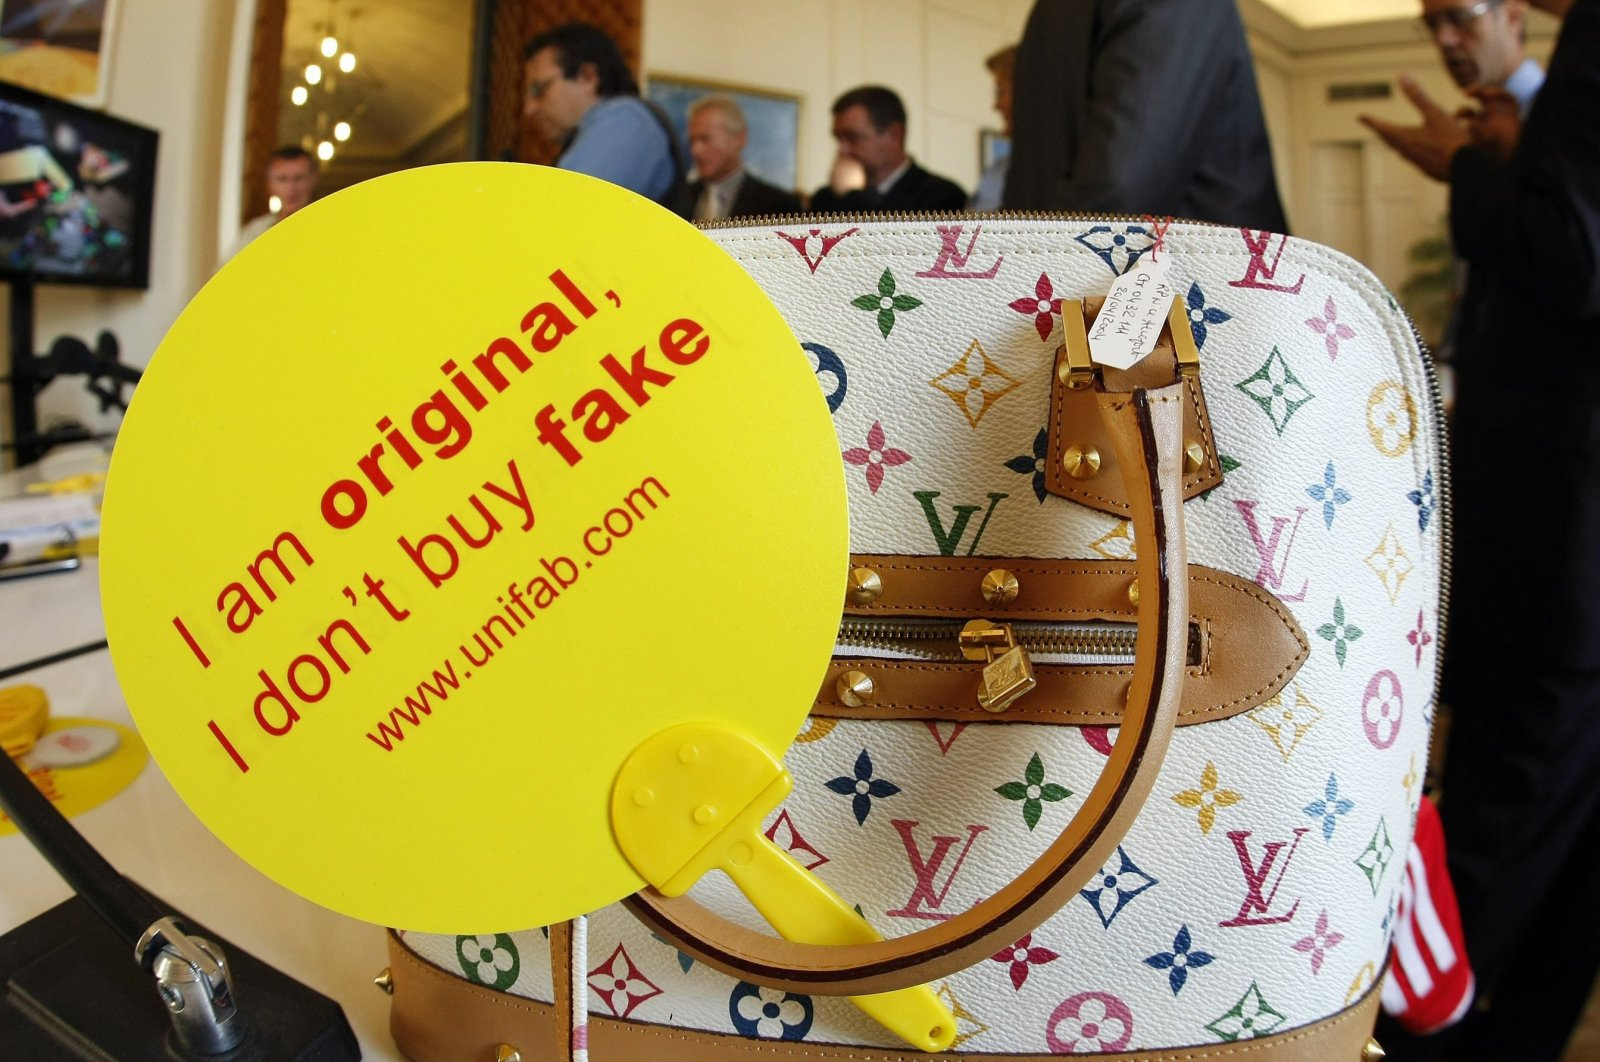 A counterfeit Louis Vuitton luxury handbag is displayed by French customs officers before a destruction operation in Cannes, France, Sept. 28, 2009. (Reuters)